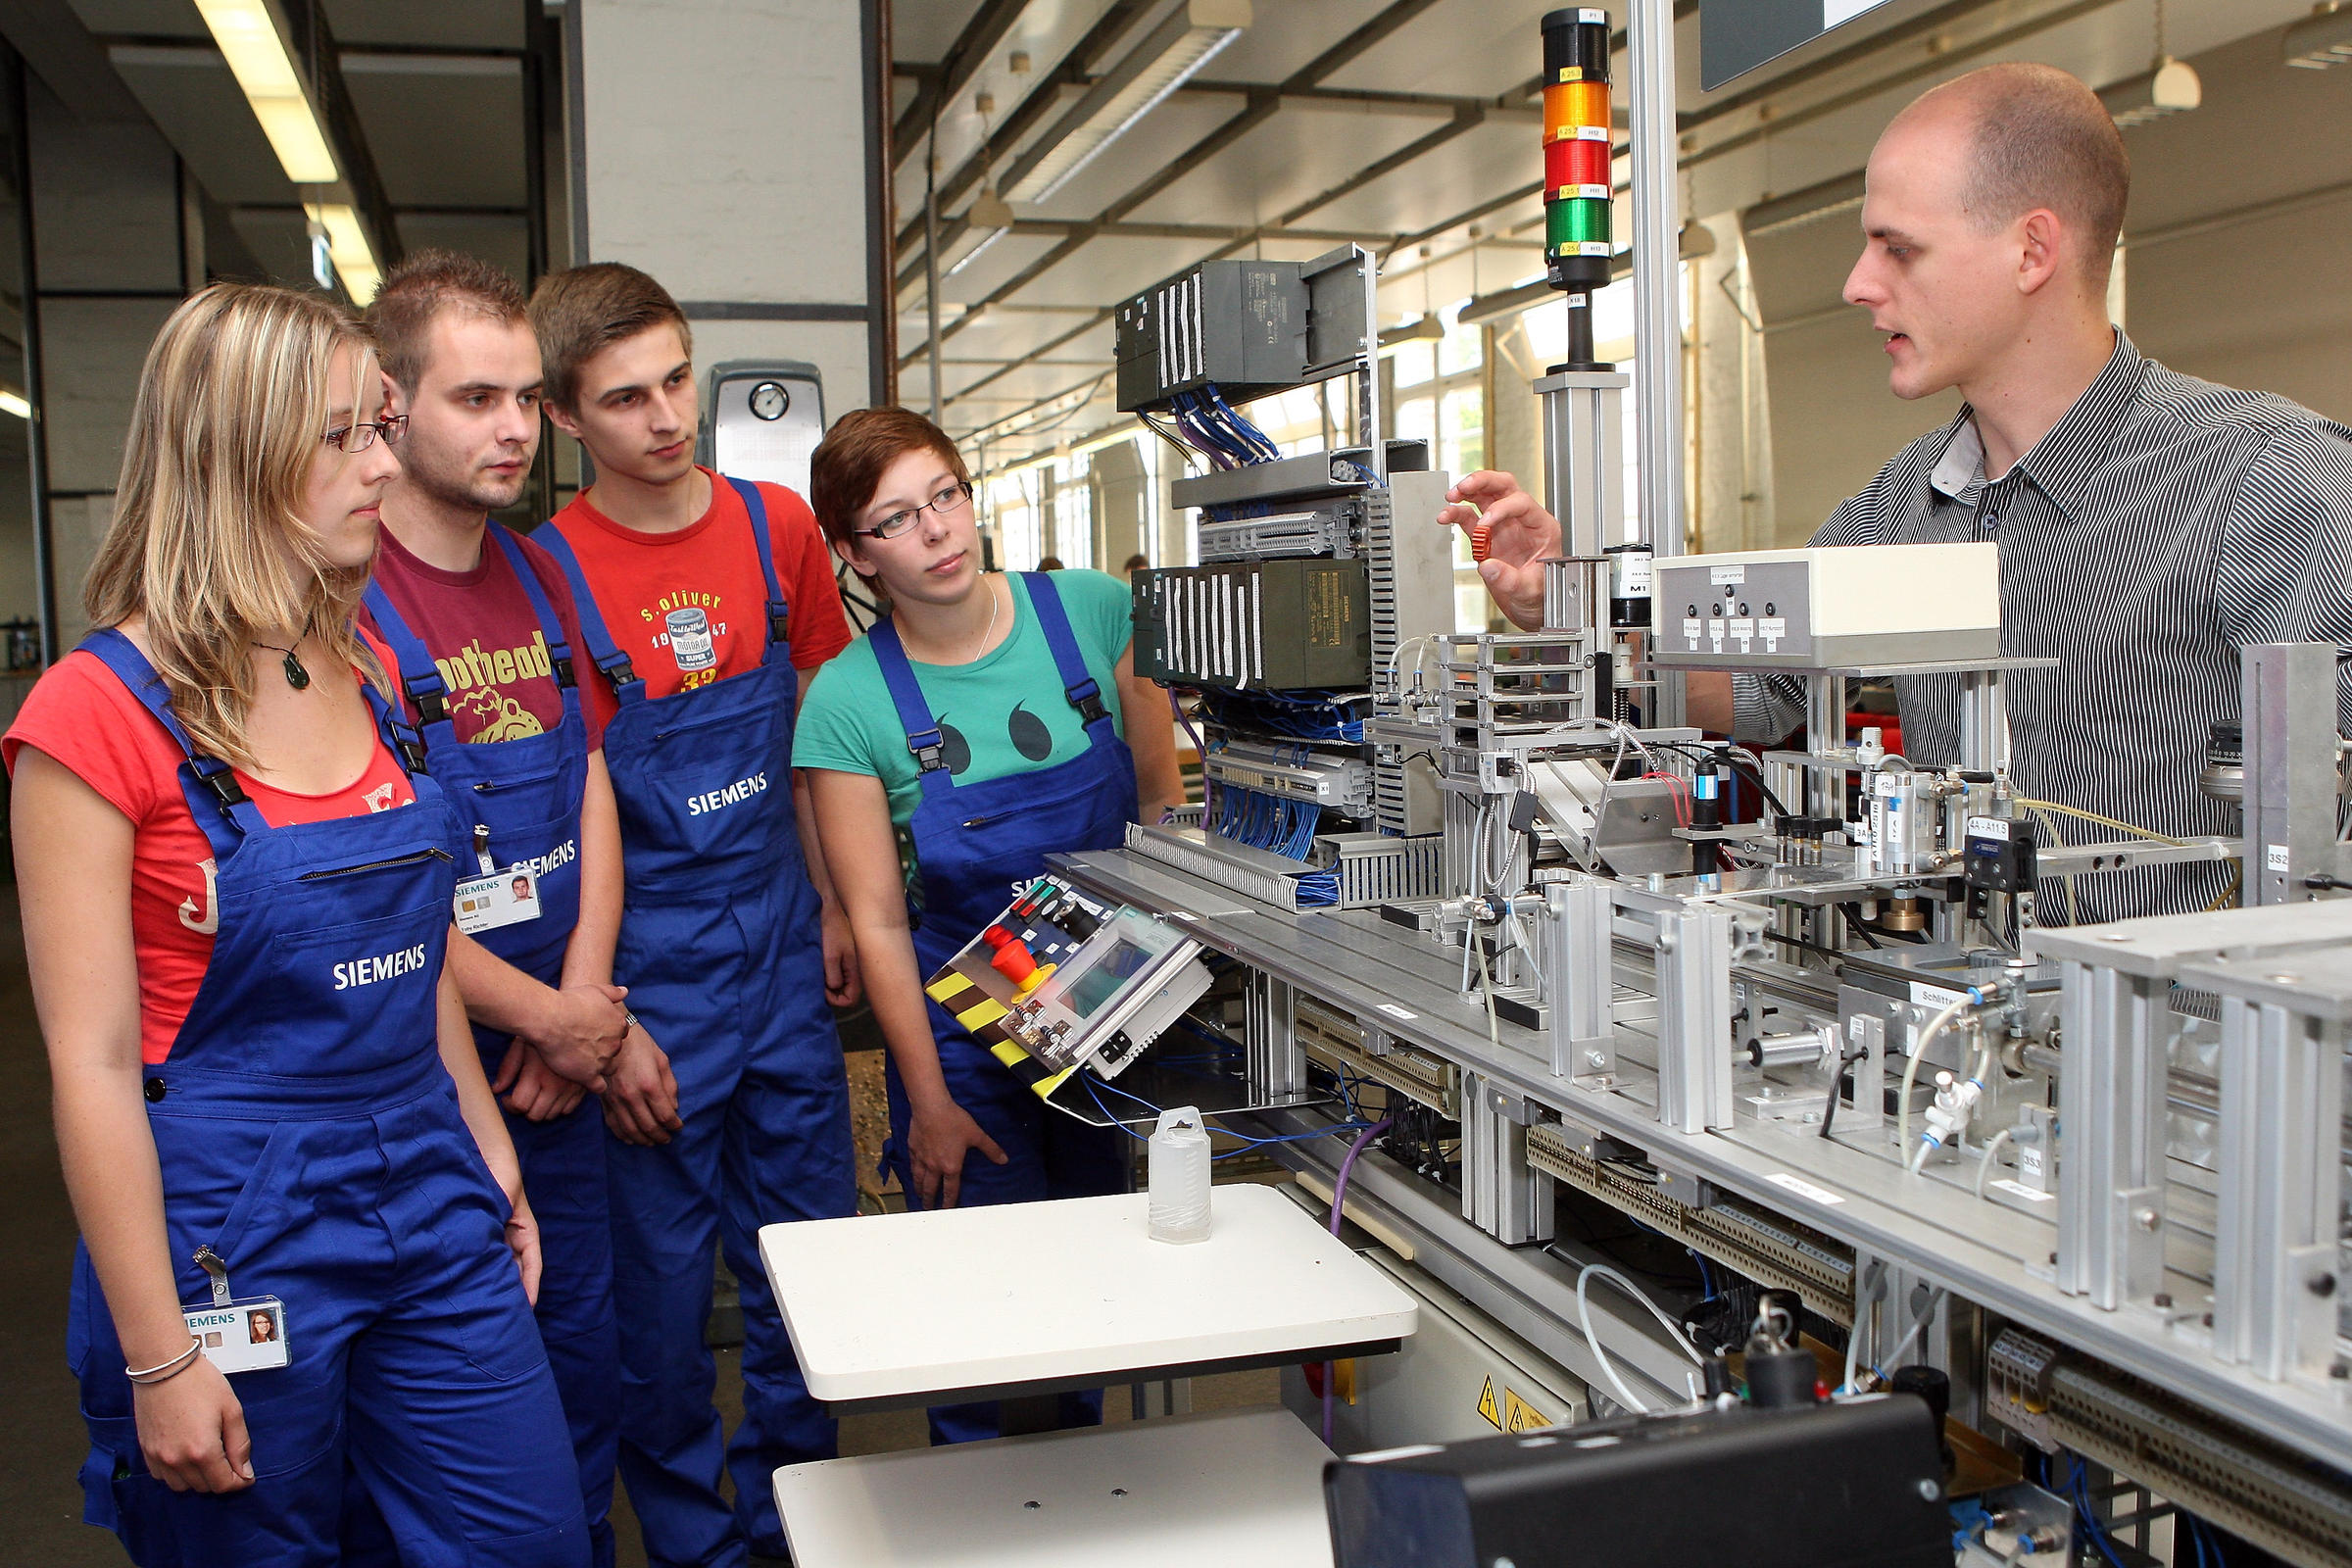 An Instructor At The Siemens Training Center In Berlin Germany With Apprentices In Germany Apprenticeship Training Is Much More Common Than In The United